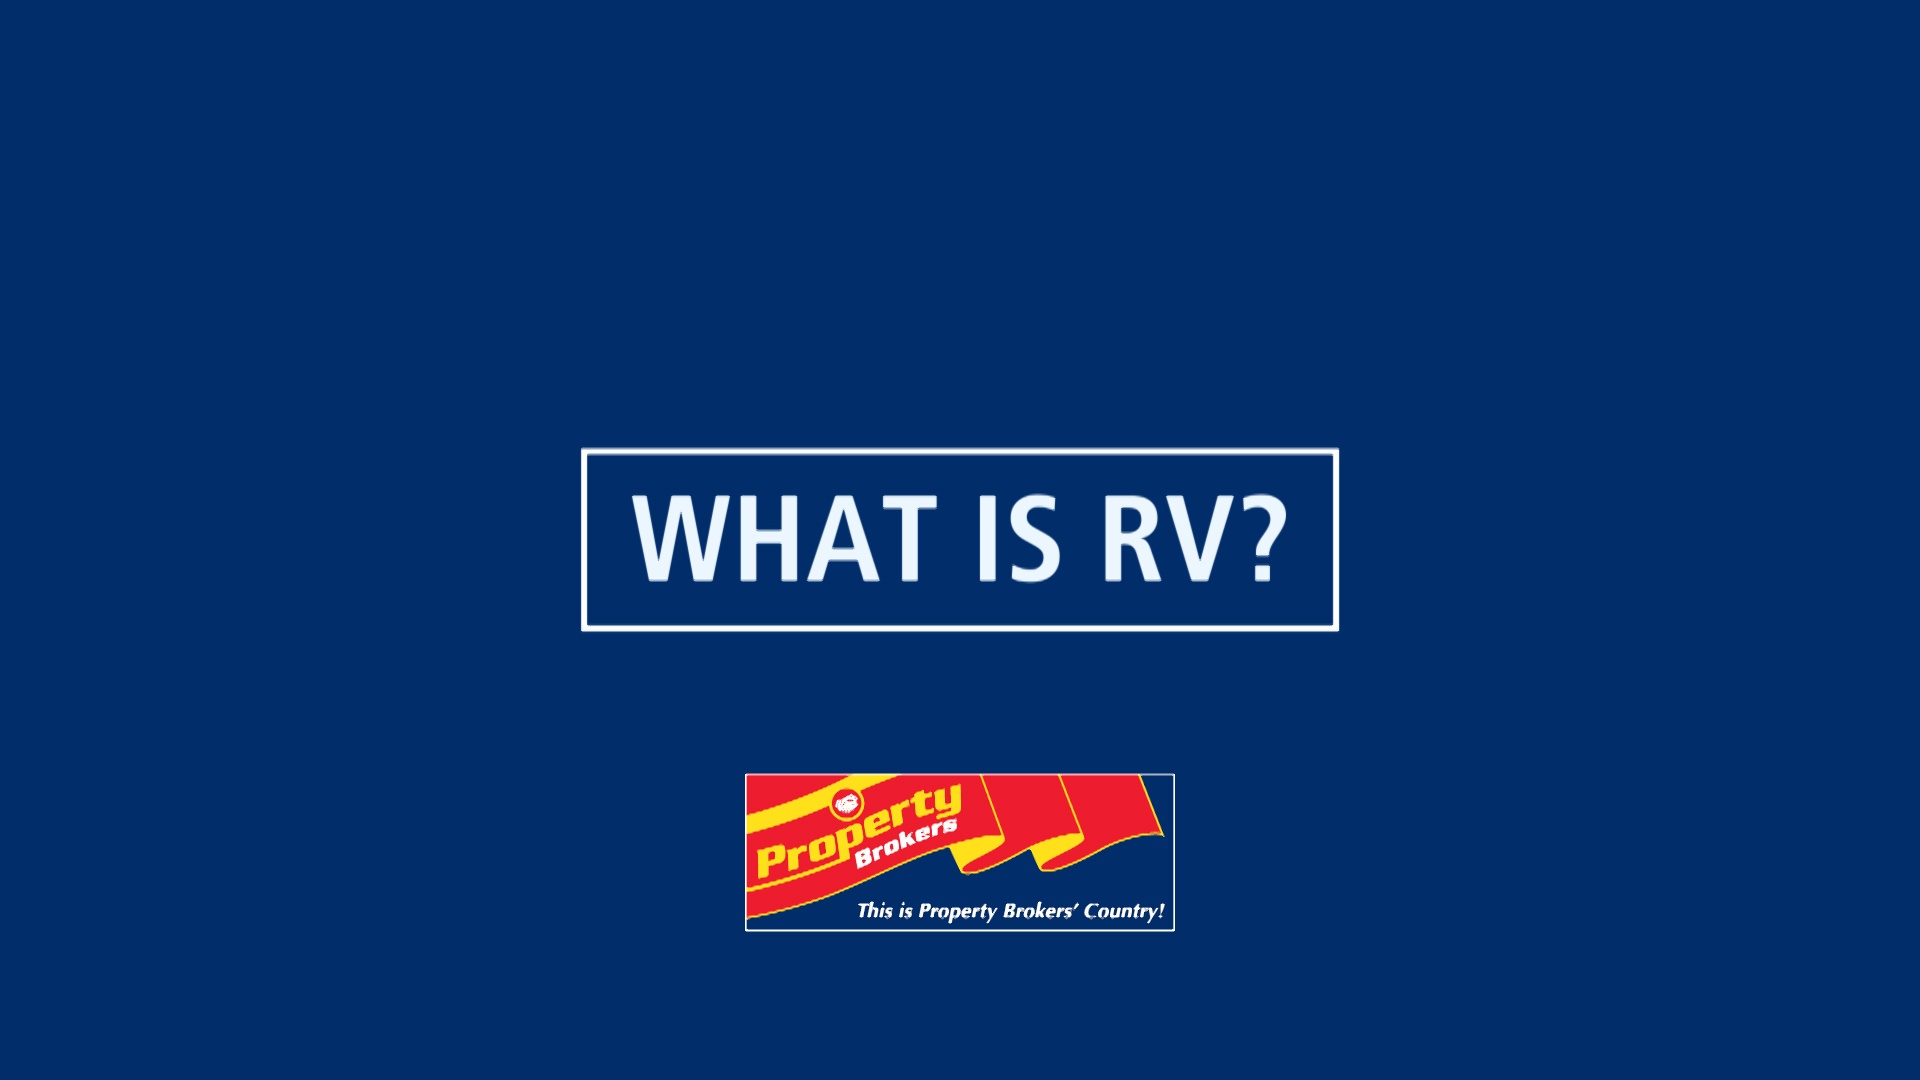 Rateable Value (RV) – What is it and should it be usedas a price indicator?